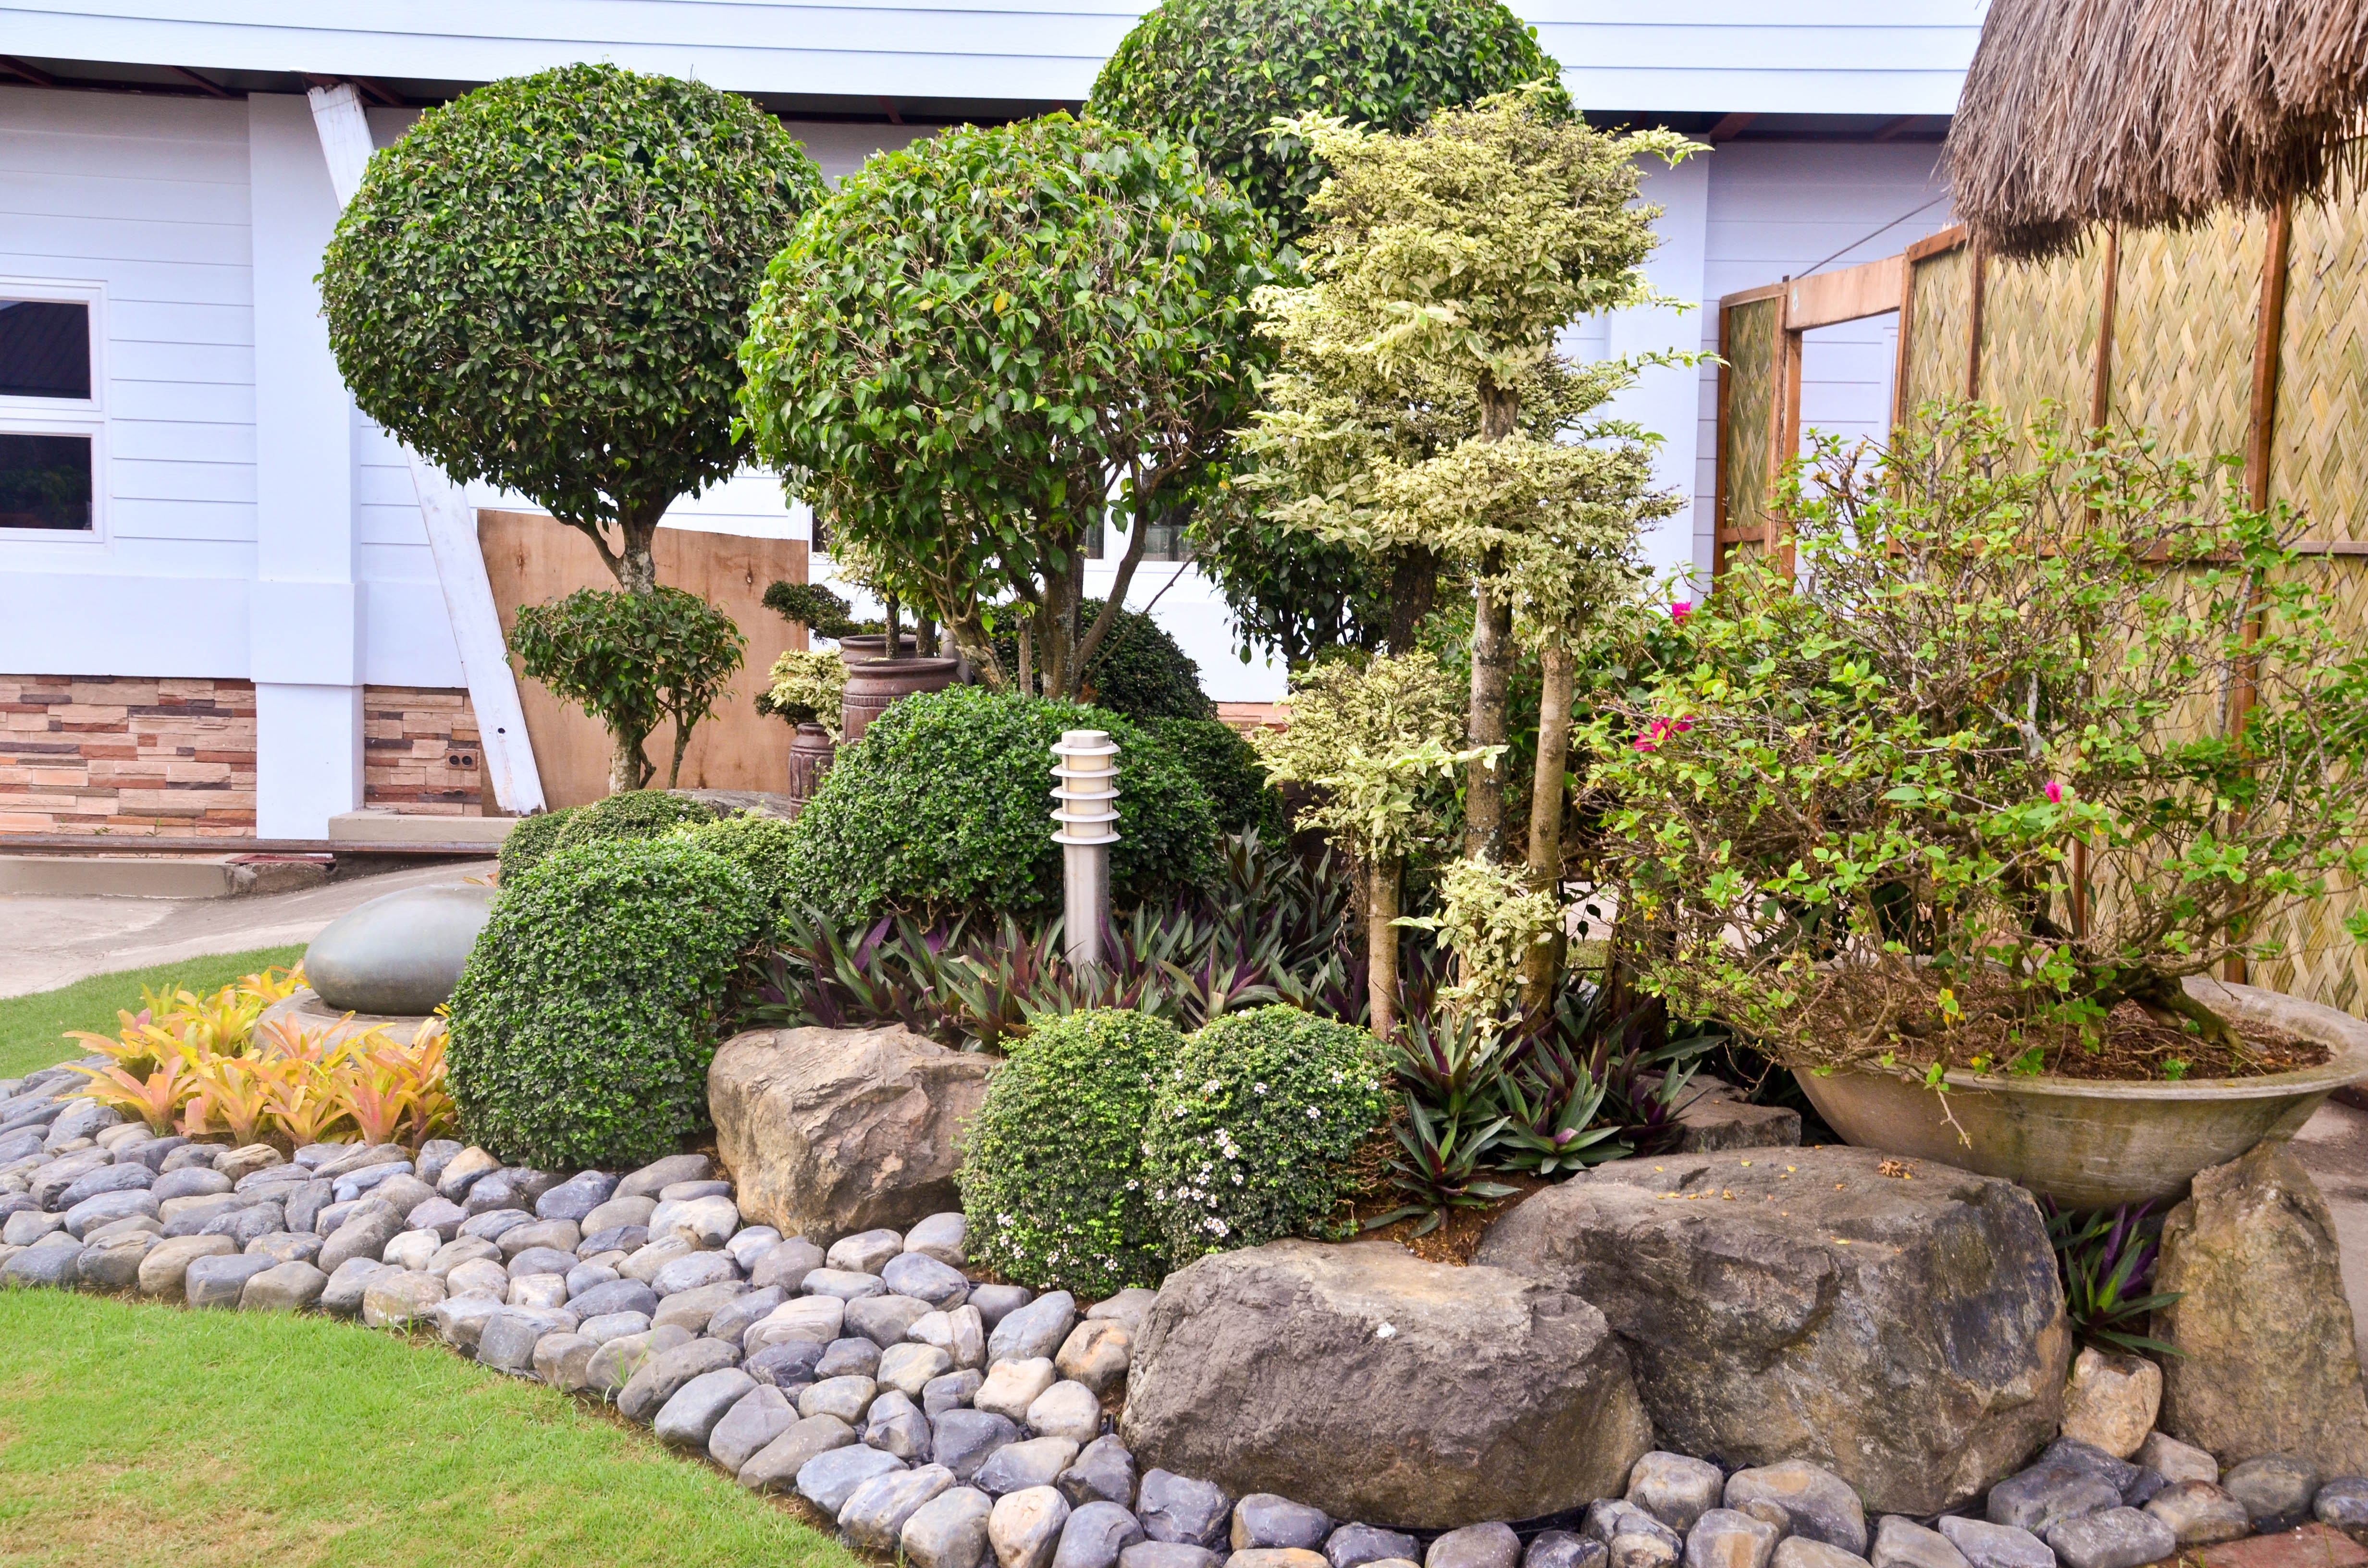 landscaping rocks how to landscape with rocks: 6 steps (with pictures) - wikihow JAHICDK